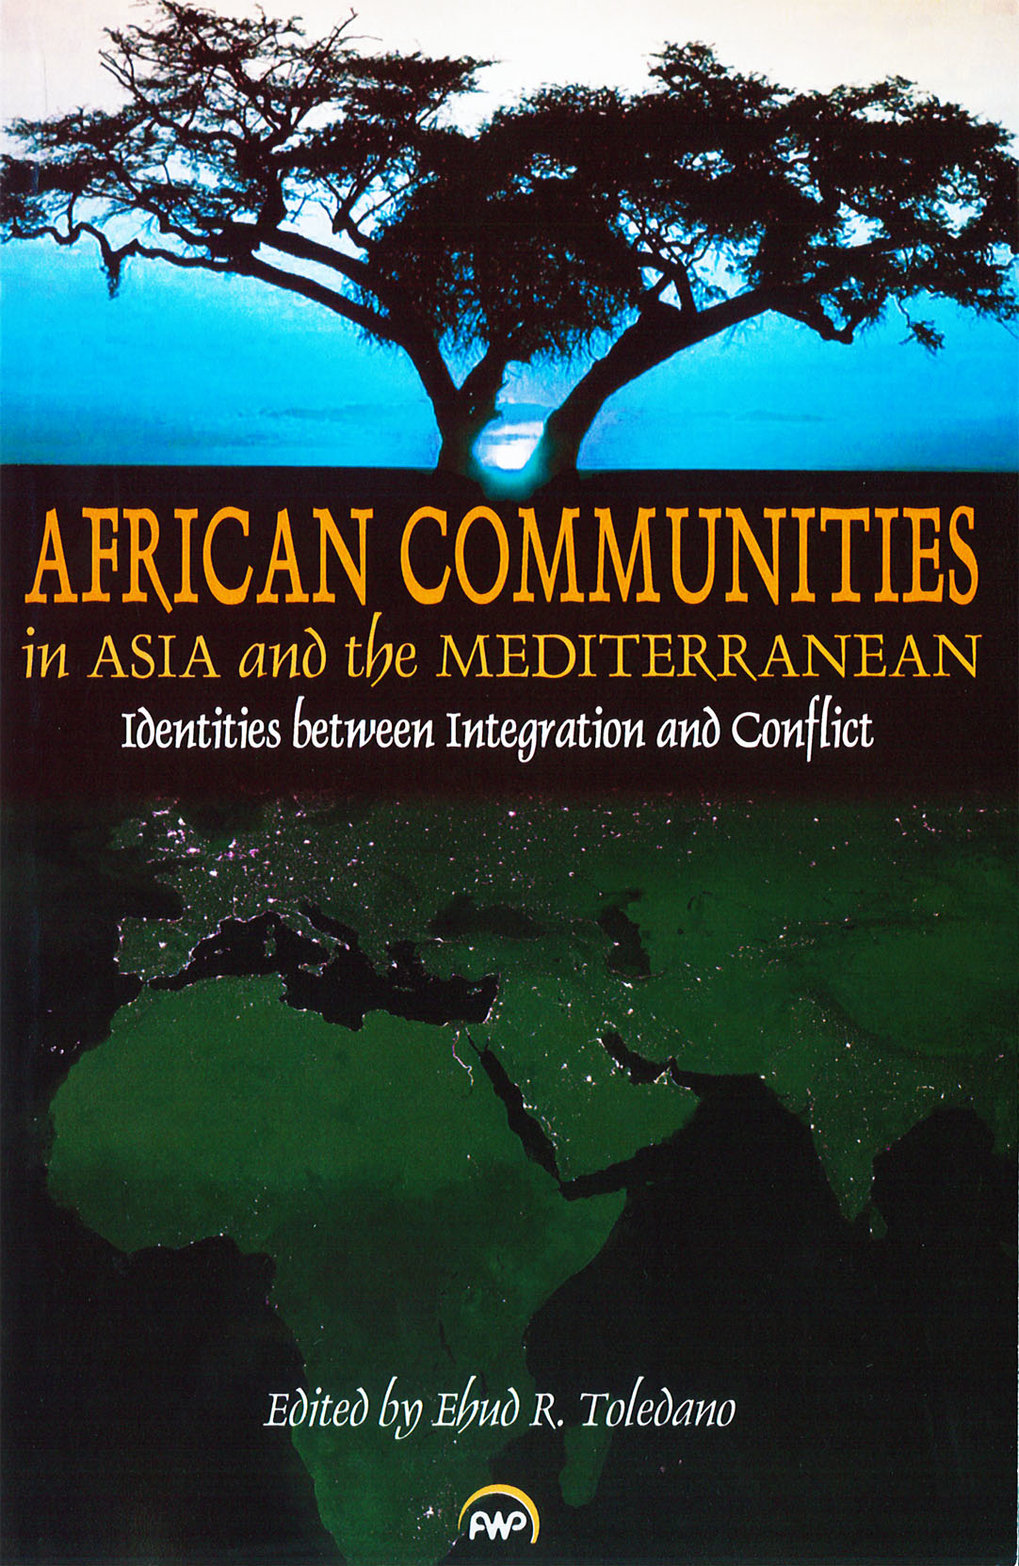 African Communities in Asia and the Mediterranean: identities between integration and conflict